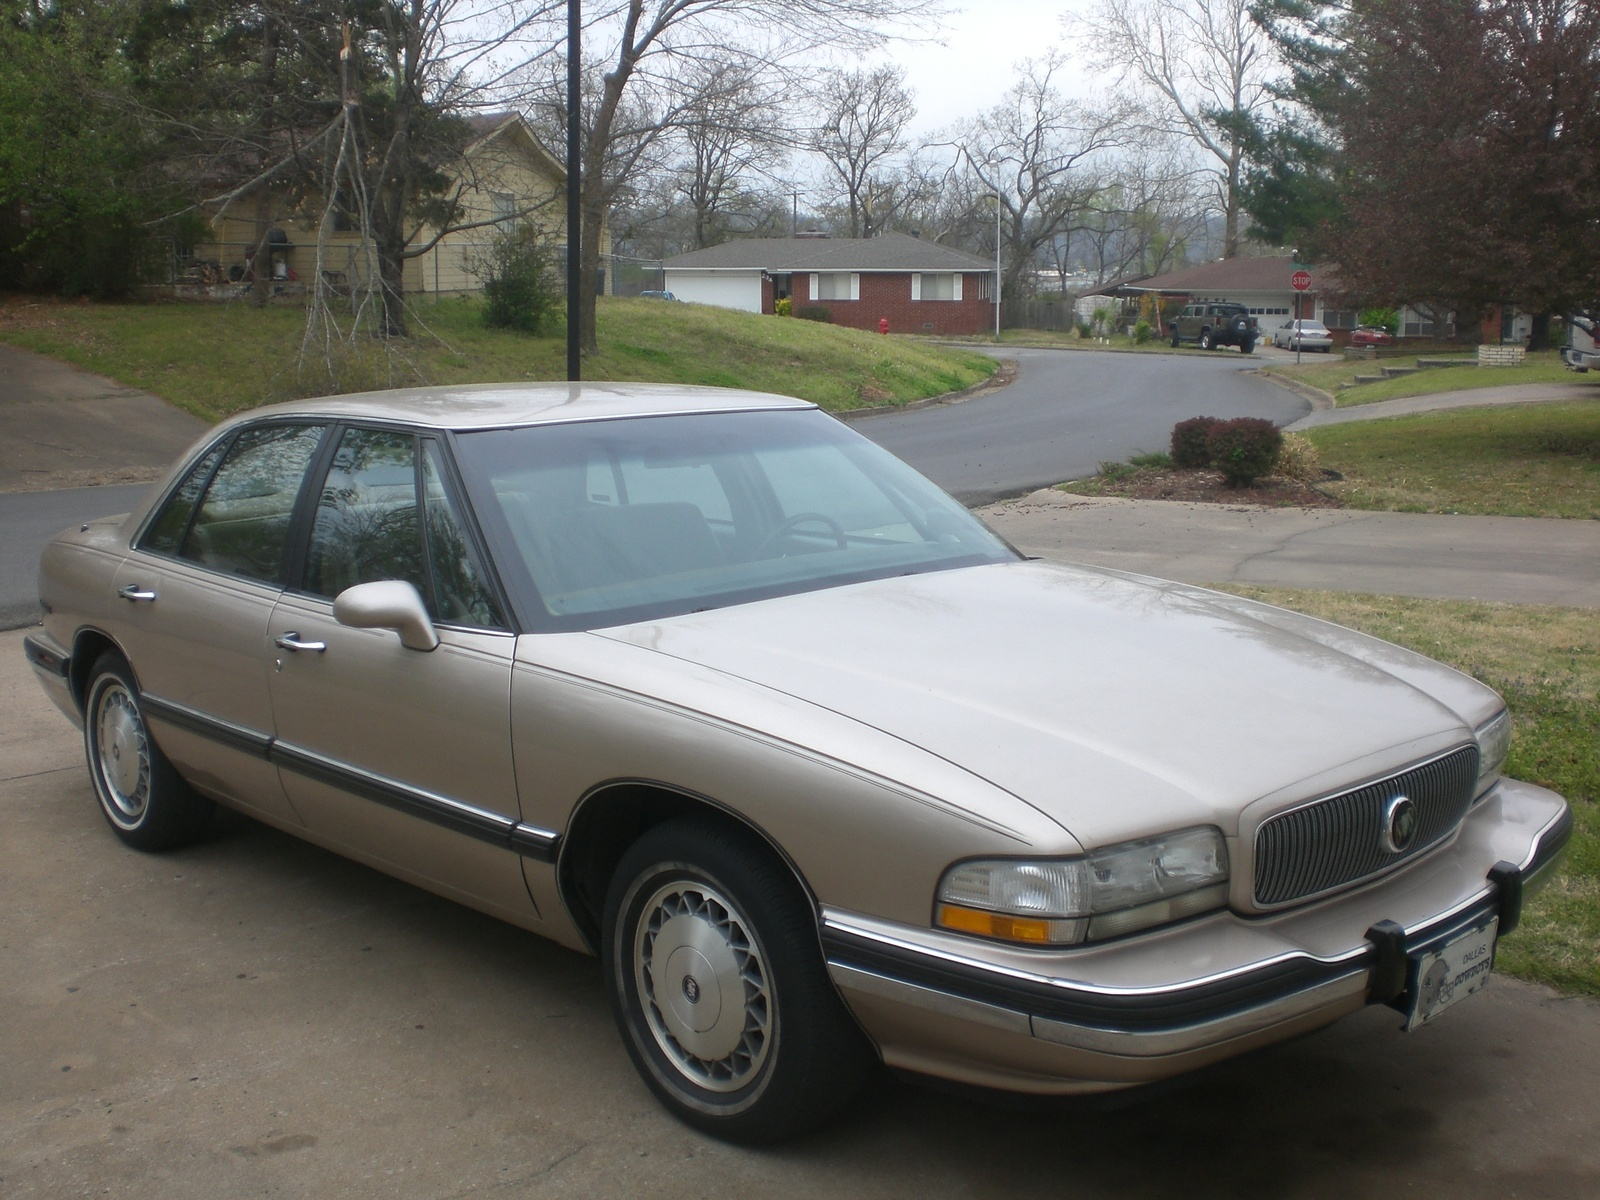 Picture of 1995 buick lesabre custom exterior gallery_worthy